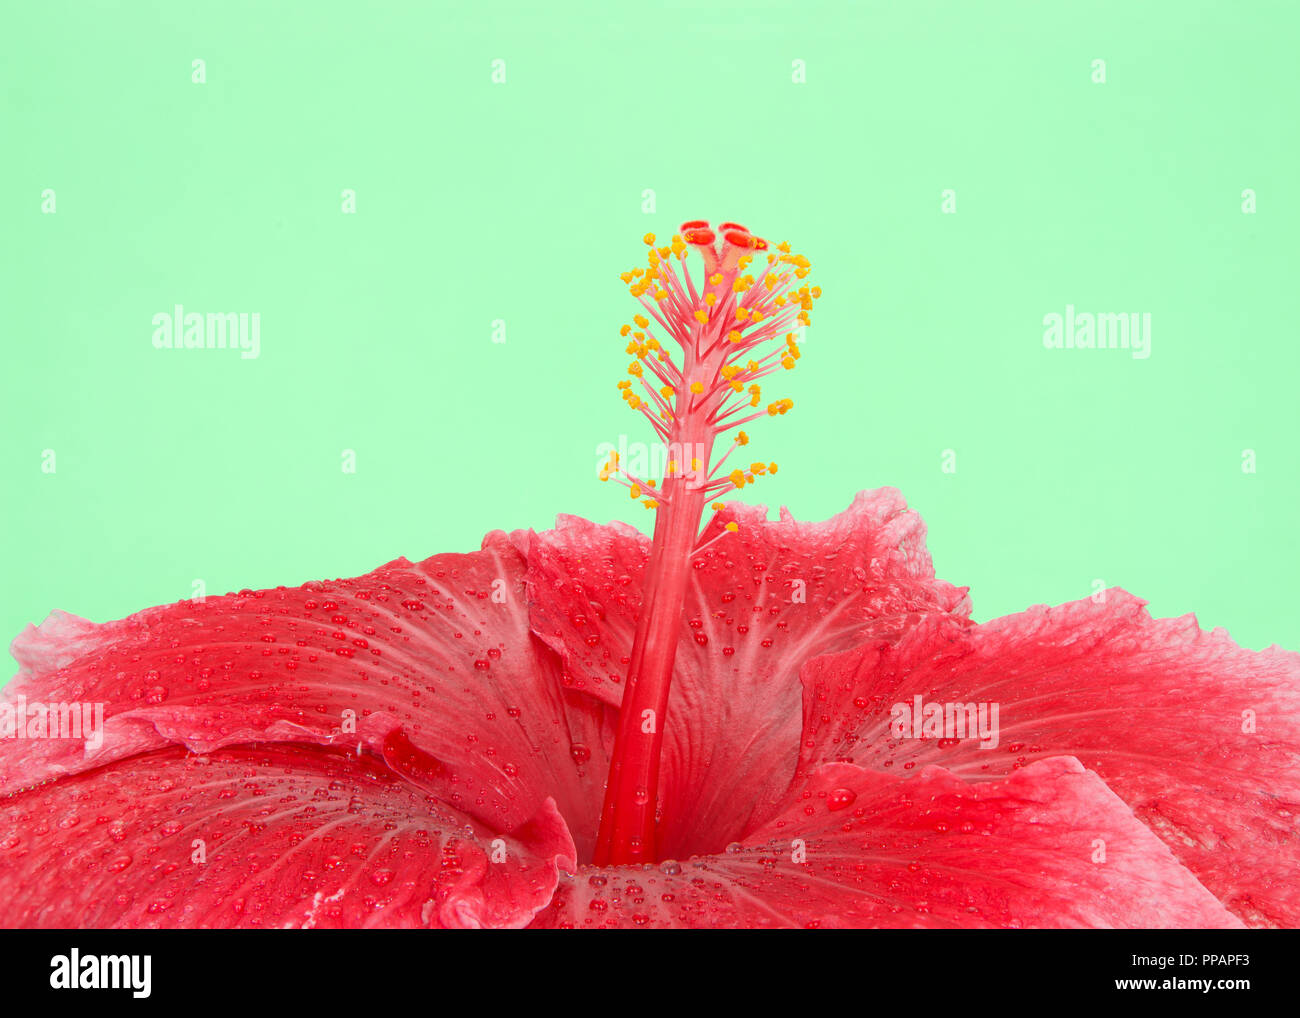 Close Up On Center Of One Red Hibiscus Flower With Water Droplets On